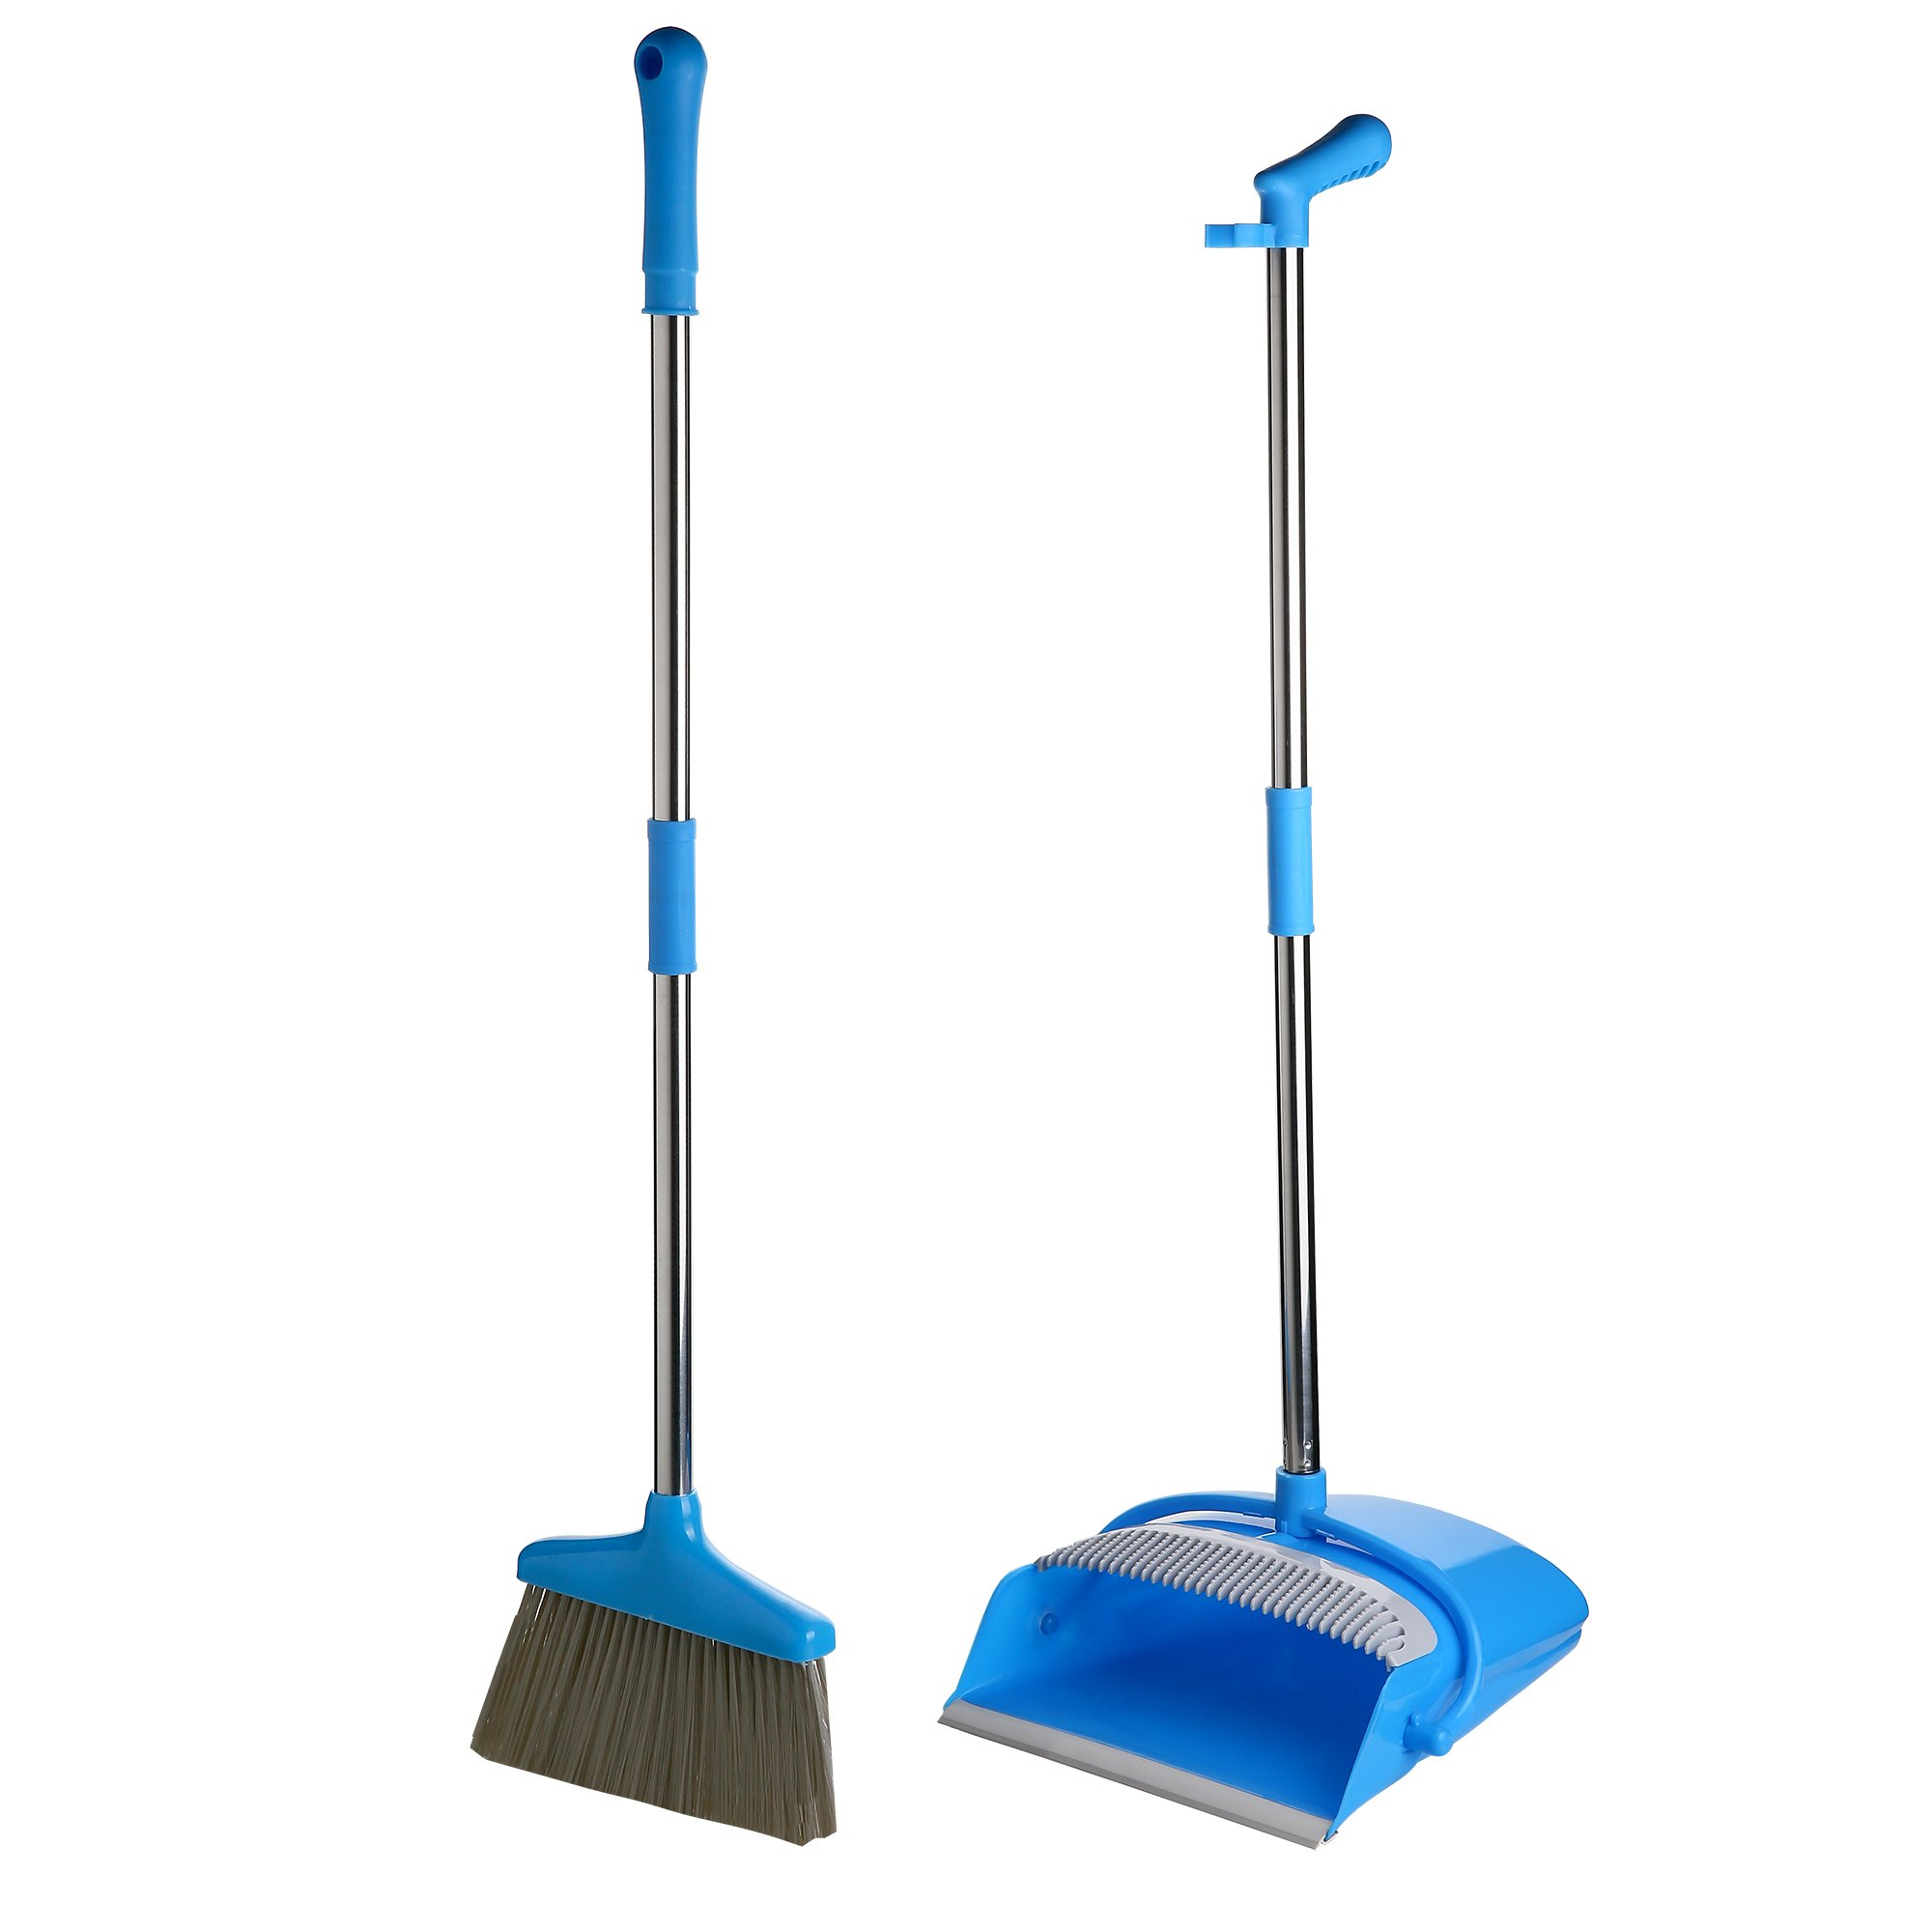 Broom and Dustpan Set for Office and Home Standing Upright Sweep Use Long Handle Dustpan and Lobby Broom for Office and Home Sweep Quick Sweeping Standing Sweep Set with Broom (Blue)